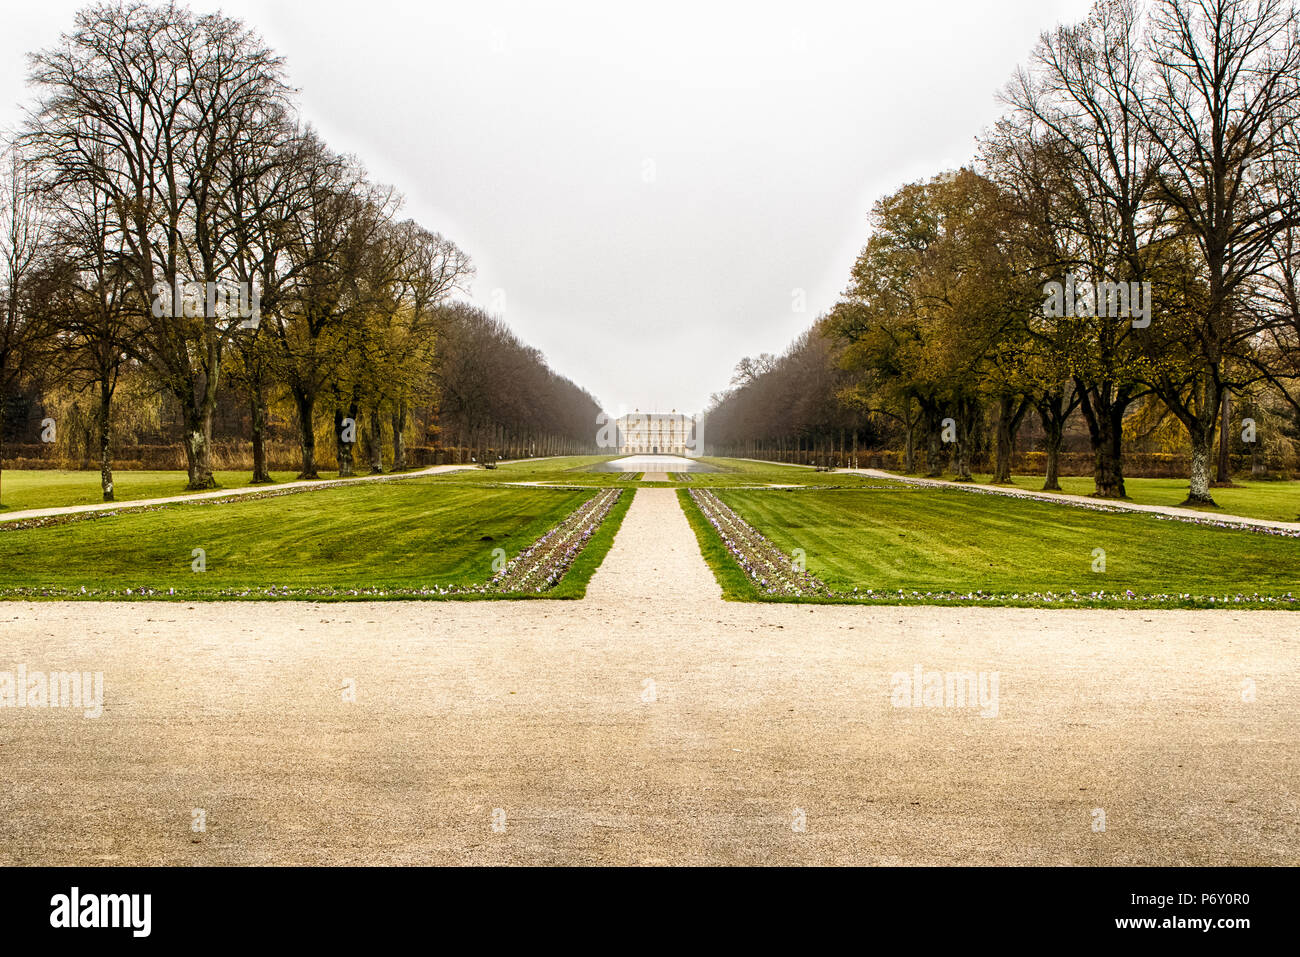 MUNICH, GERMANY - November 15, 2017: Schleissheim Palace in Munich, Germany. Summer residence of bavarian rulers. - Stock Image